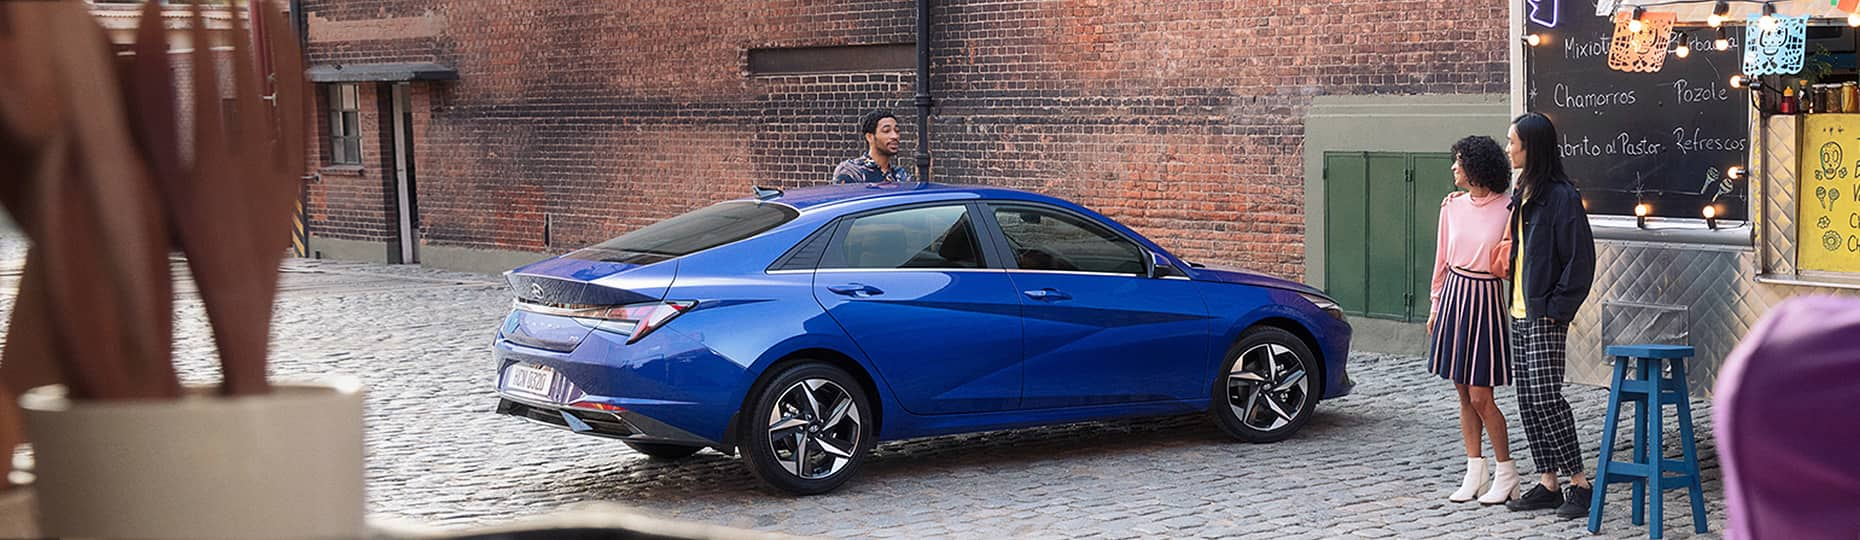 Blue Elantra is placed in front of a building with white color